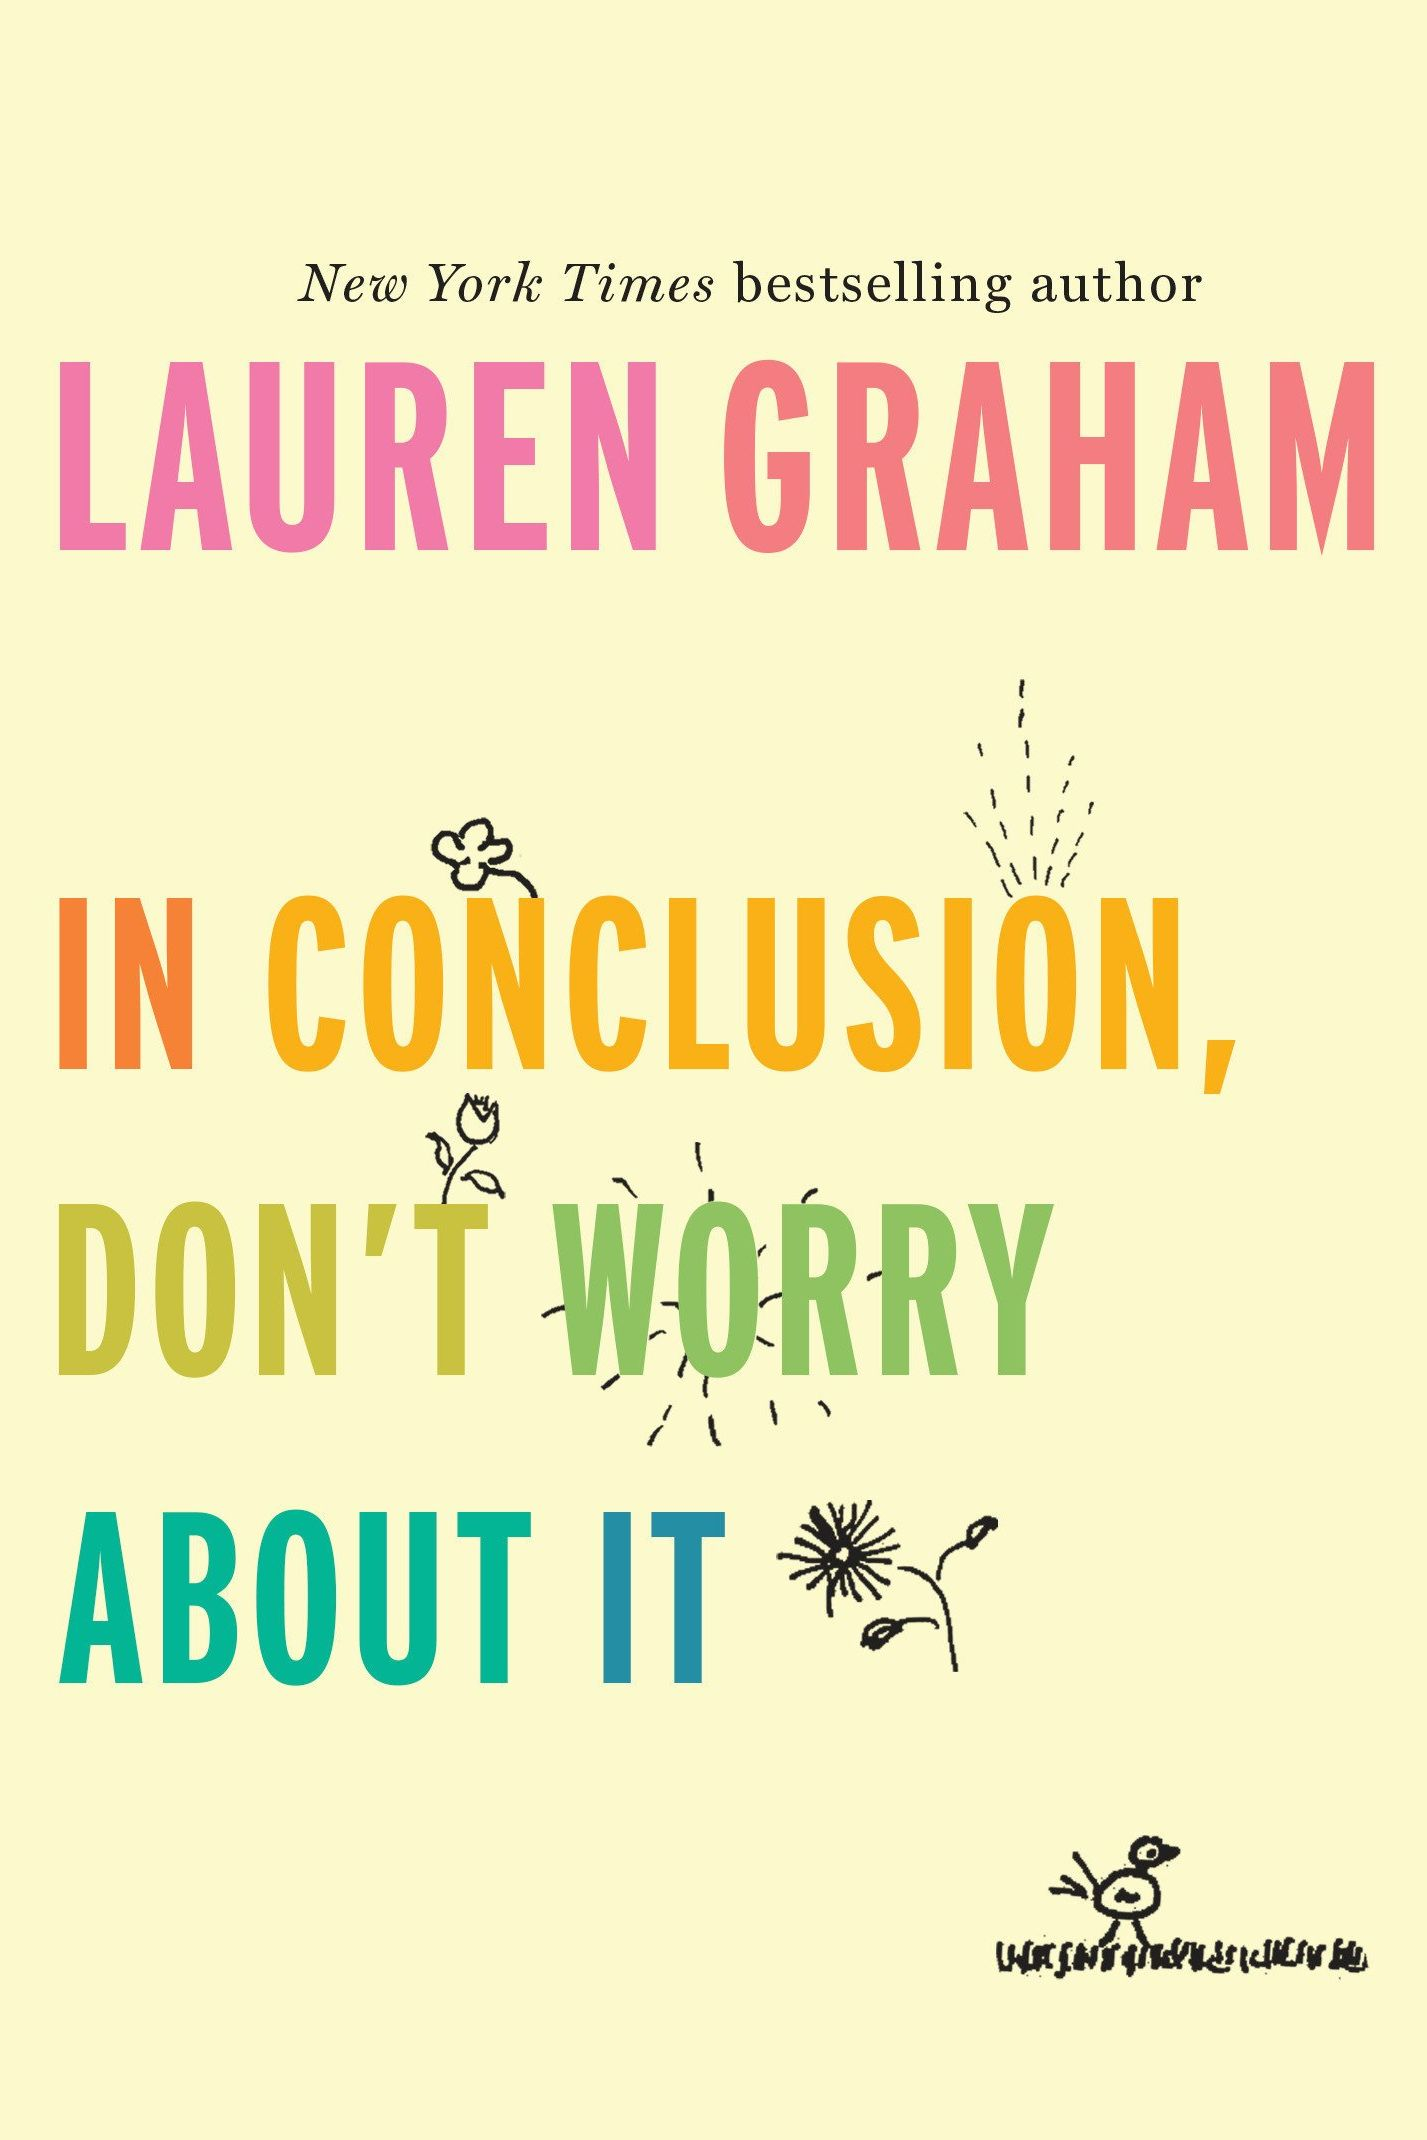 'In Conclusion, Don't Worry About It' by Lauren Graham